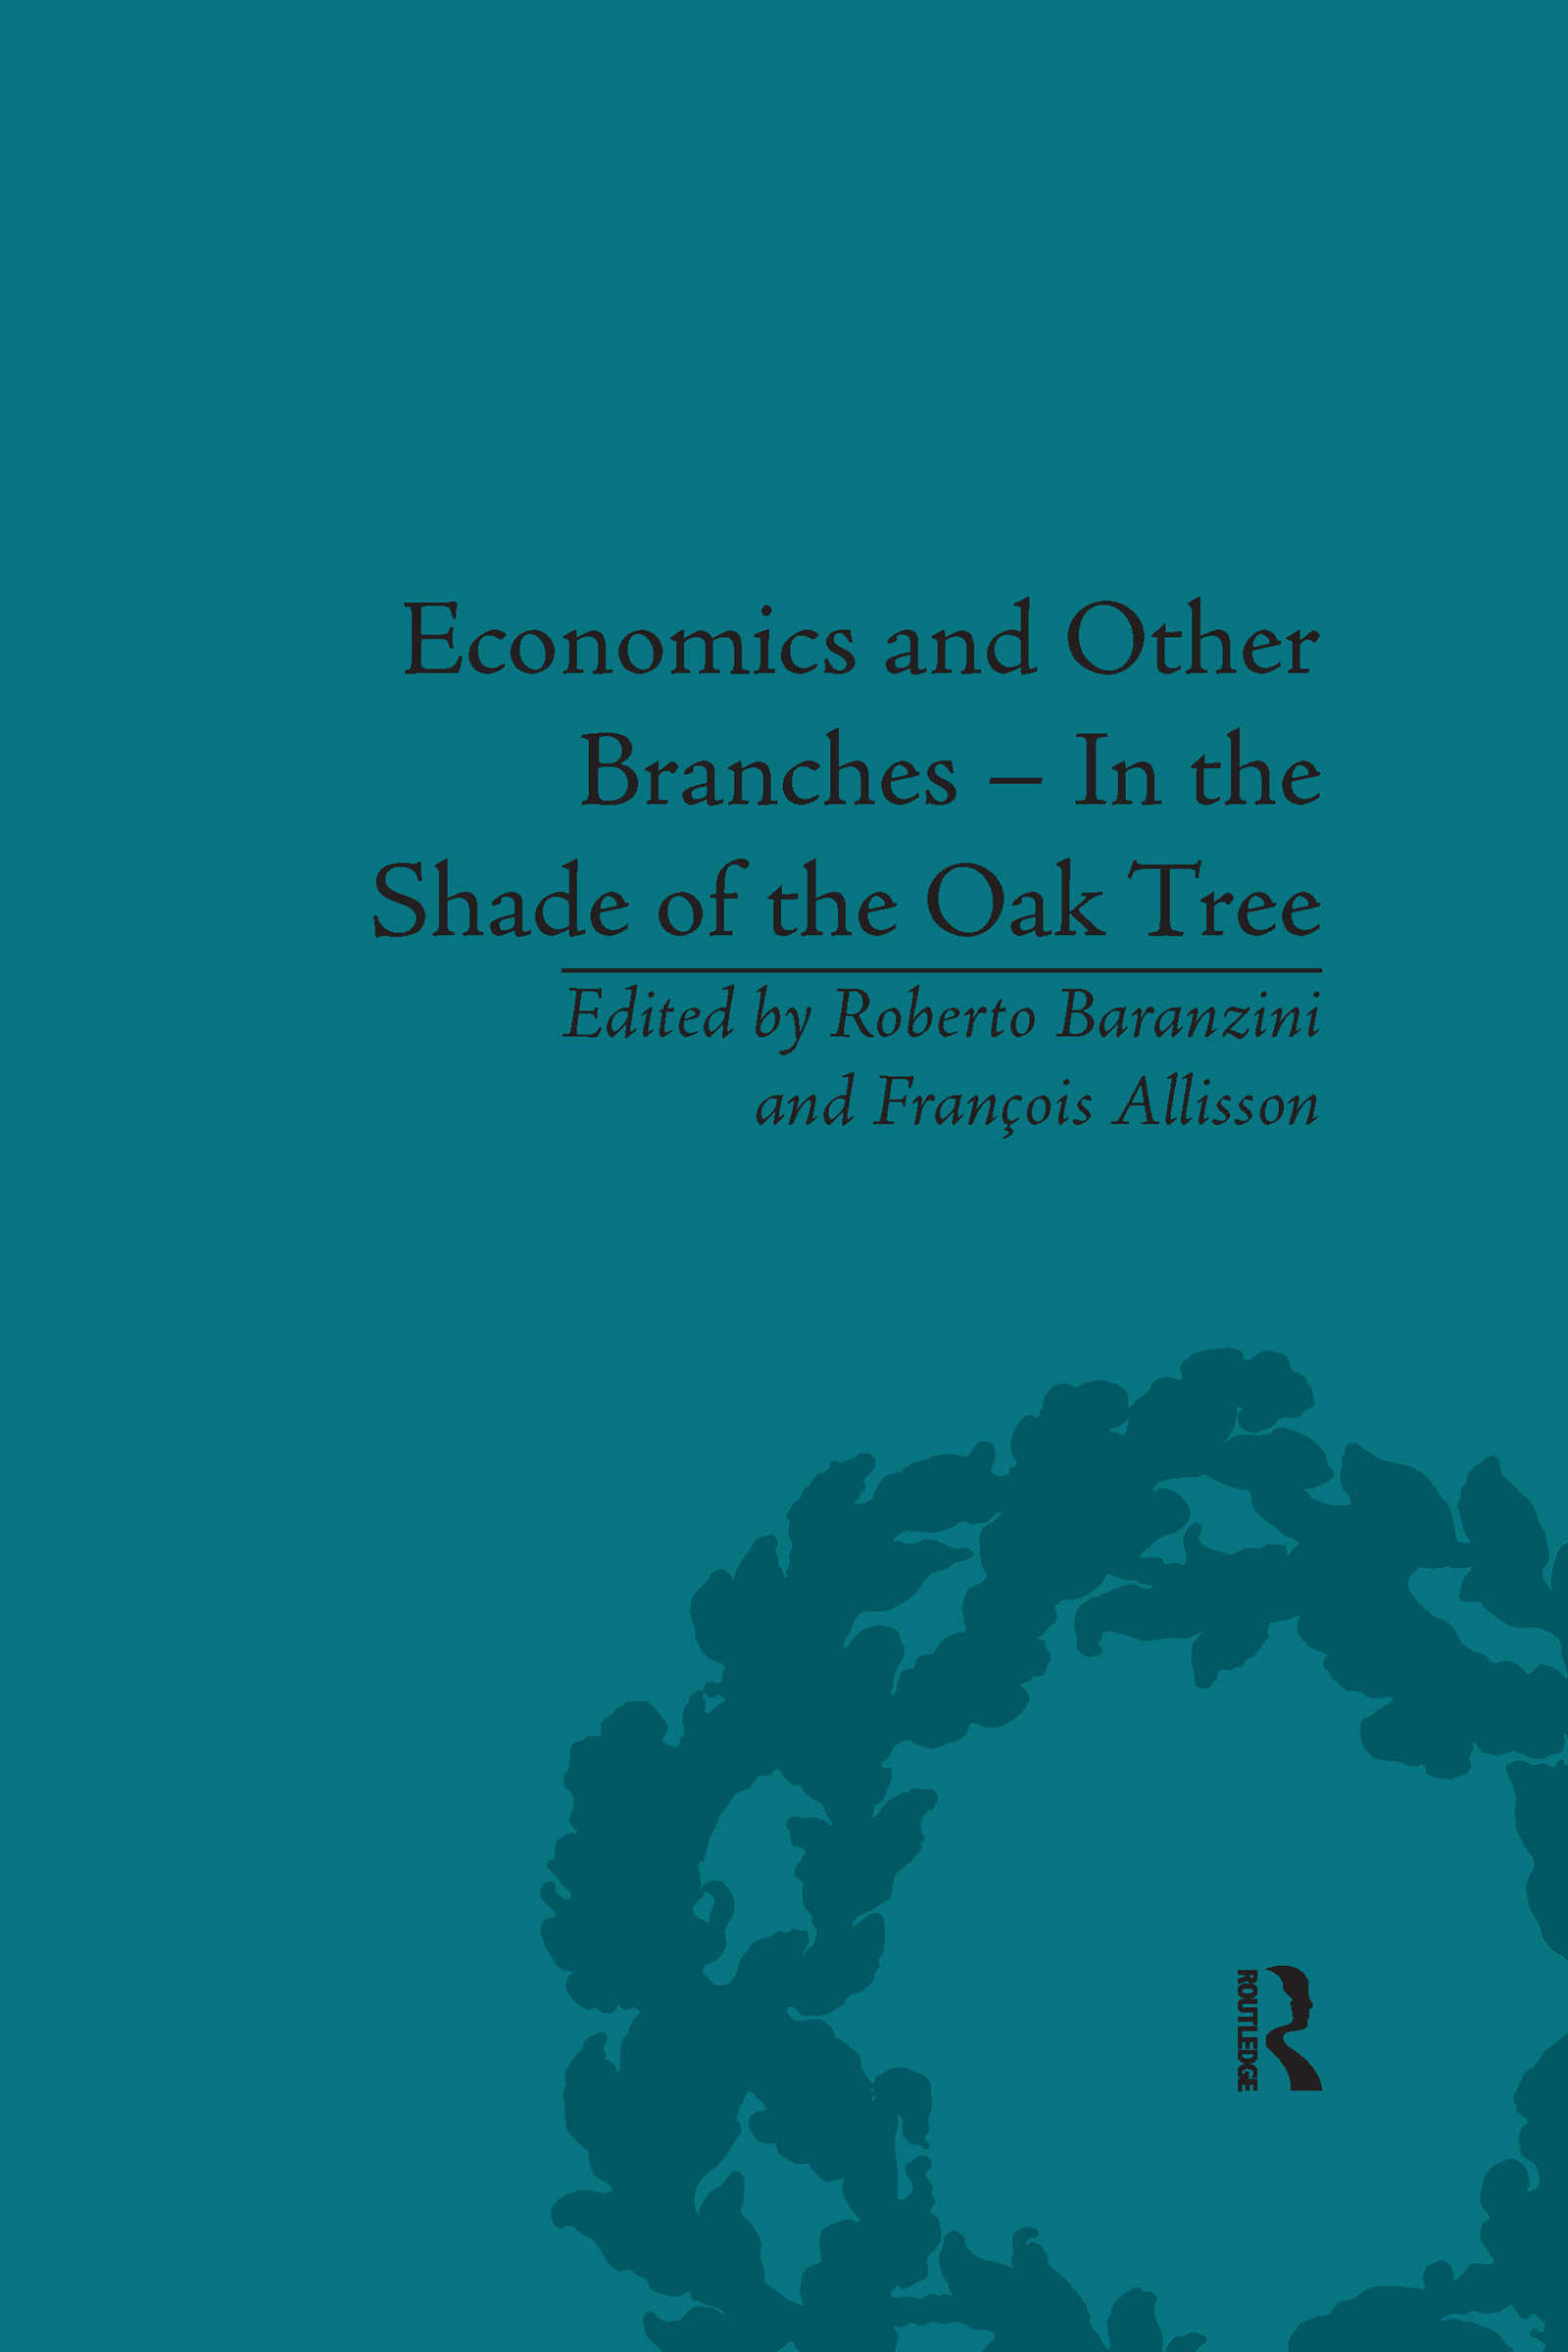 Economics and Other Branches – In the Shade of the Oak Tree